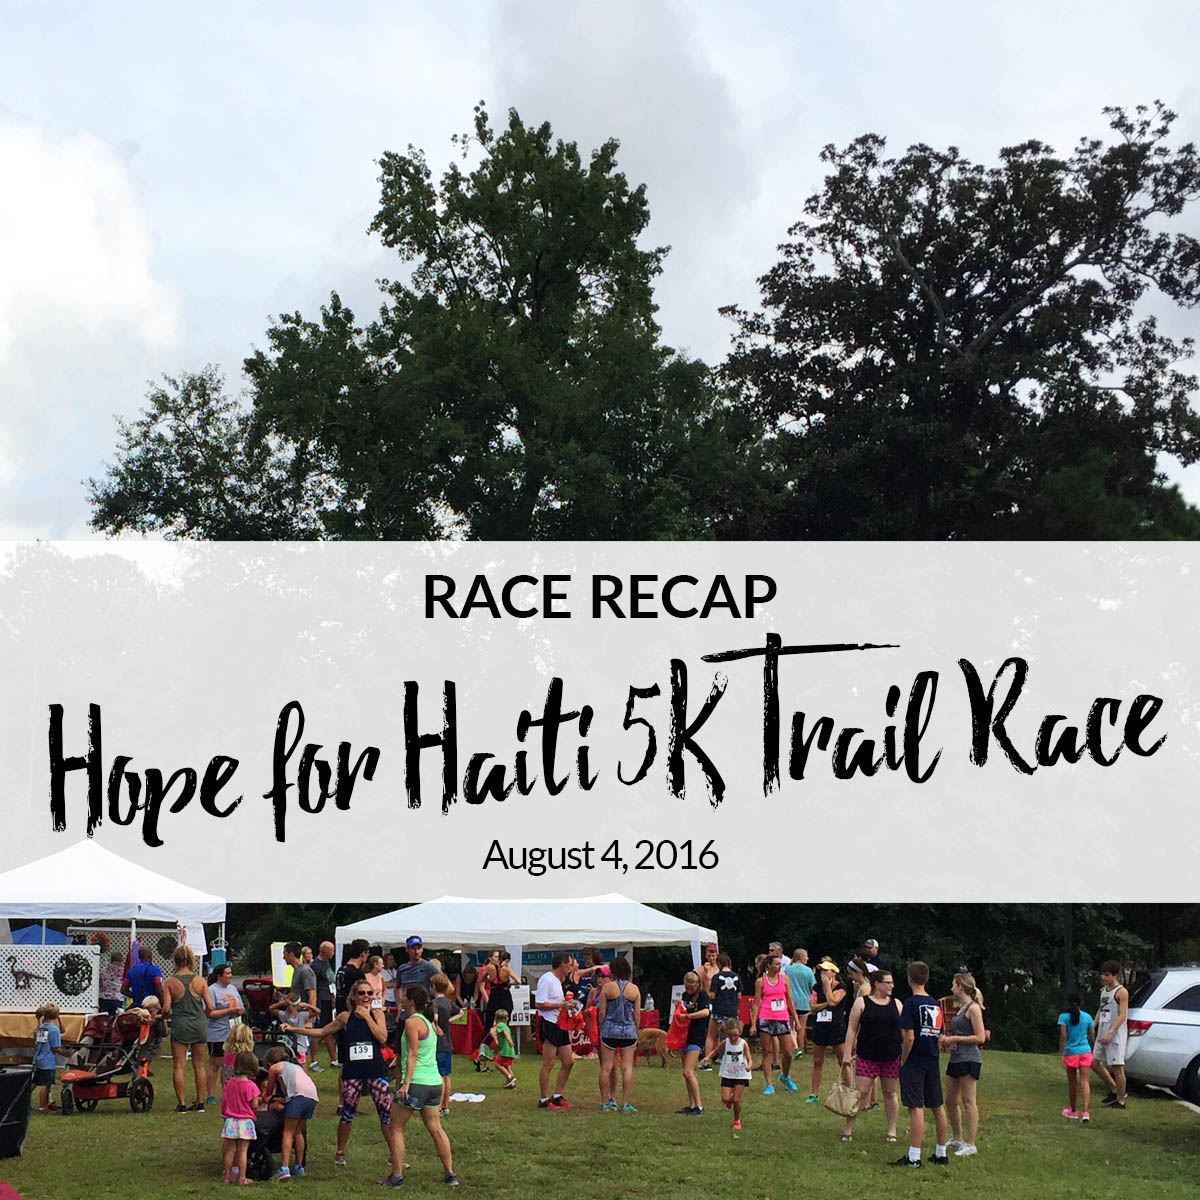 hope for haiti 5k race recap